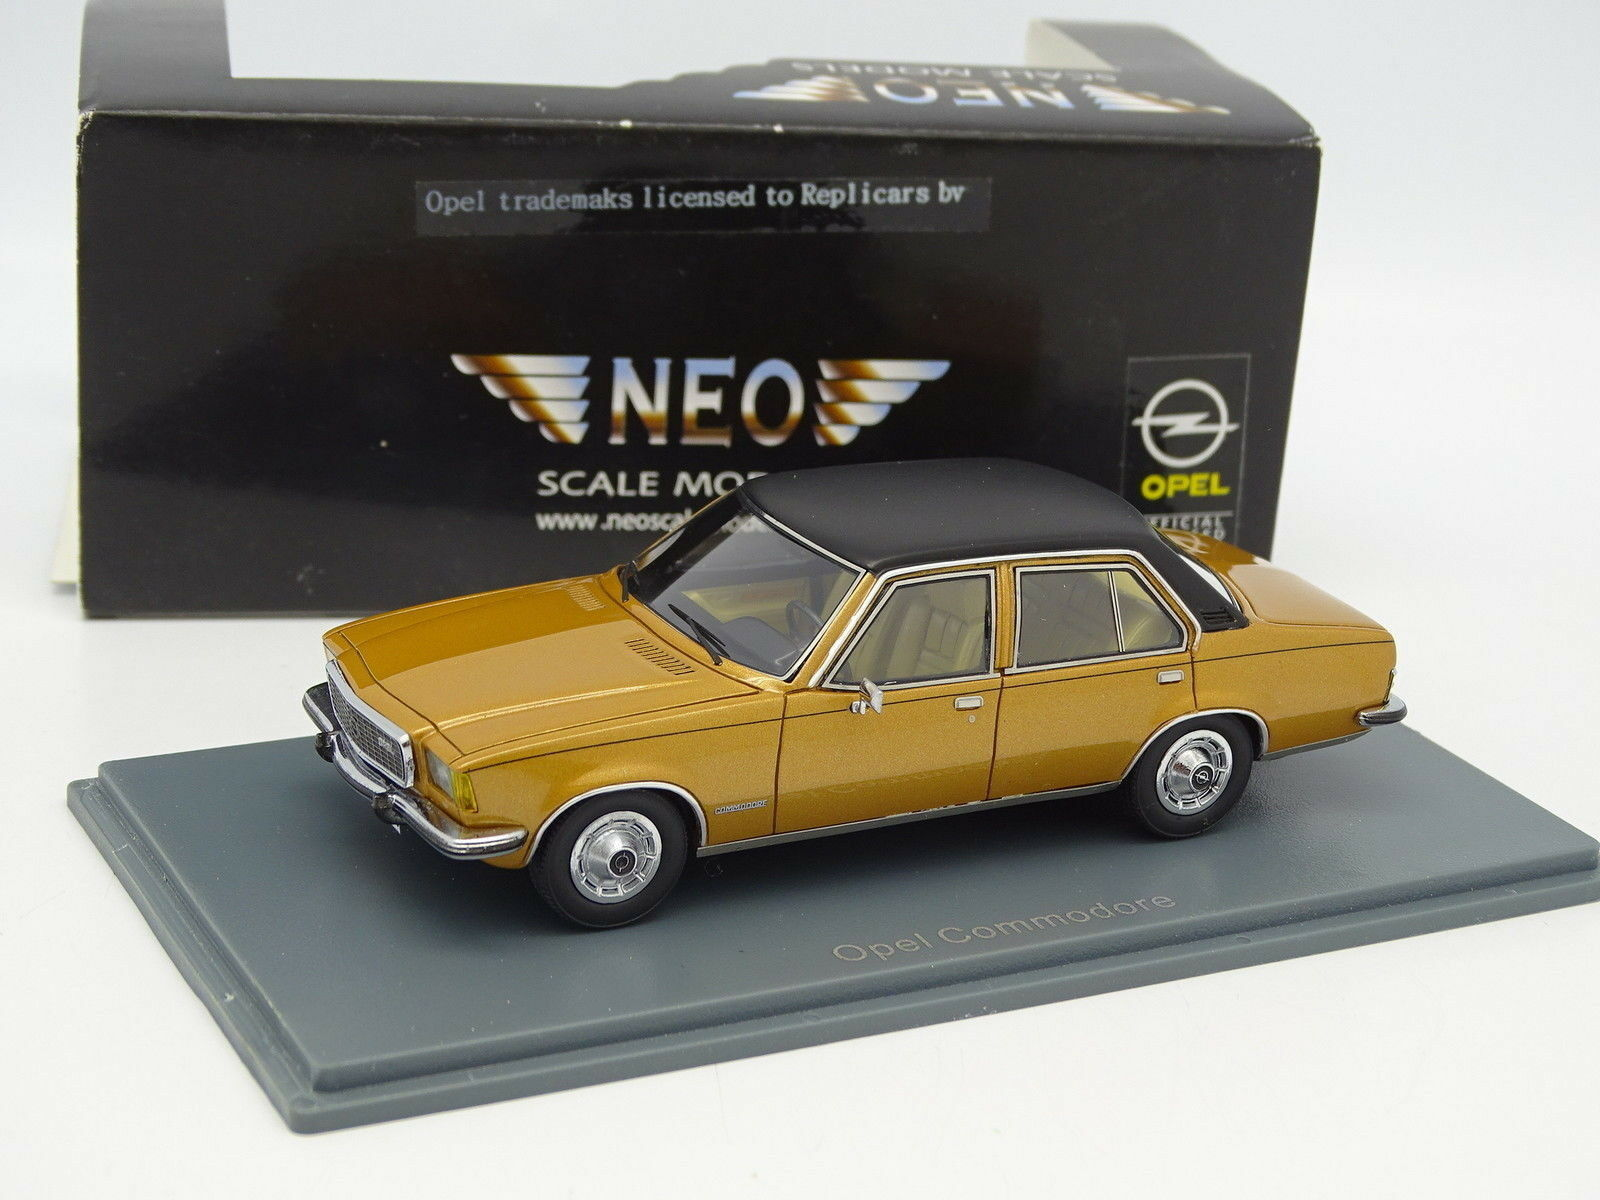 Neo 1 43 - Opel Commodore Jaune Or